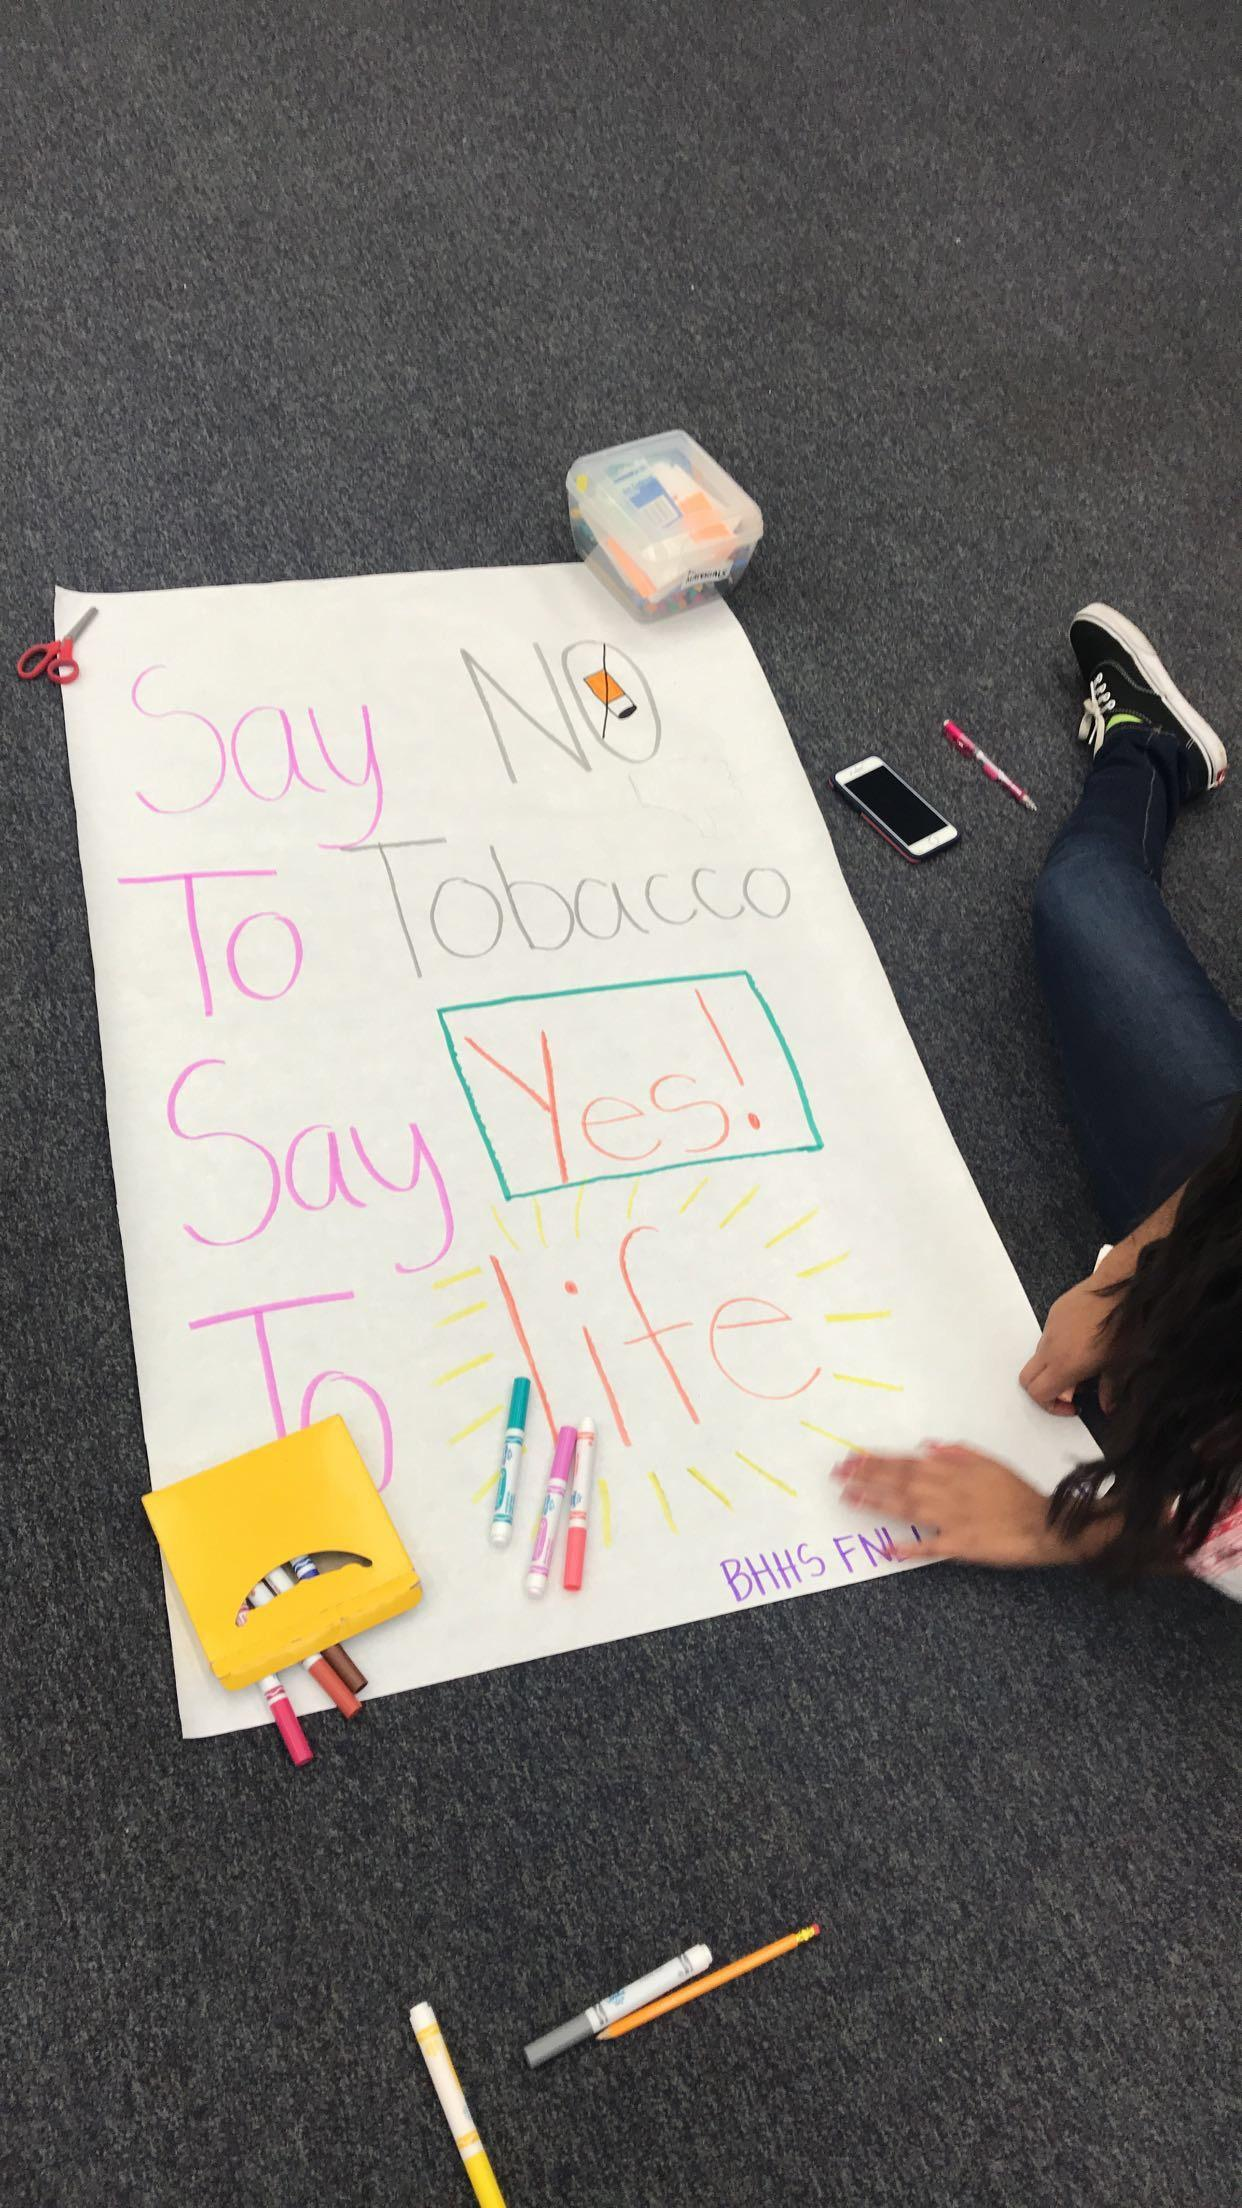 tobacco prevention posters